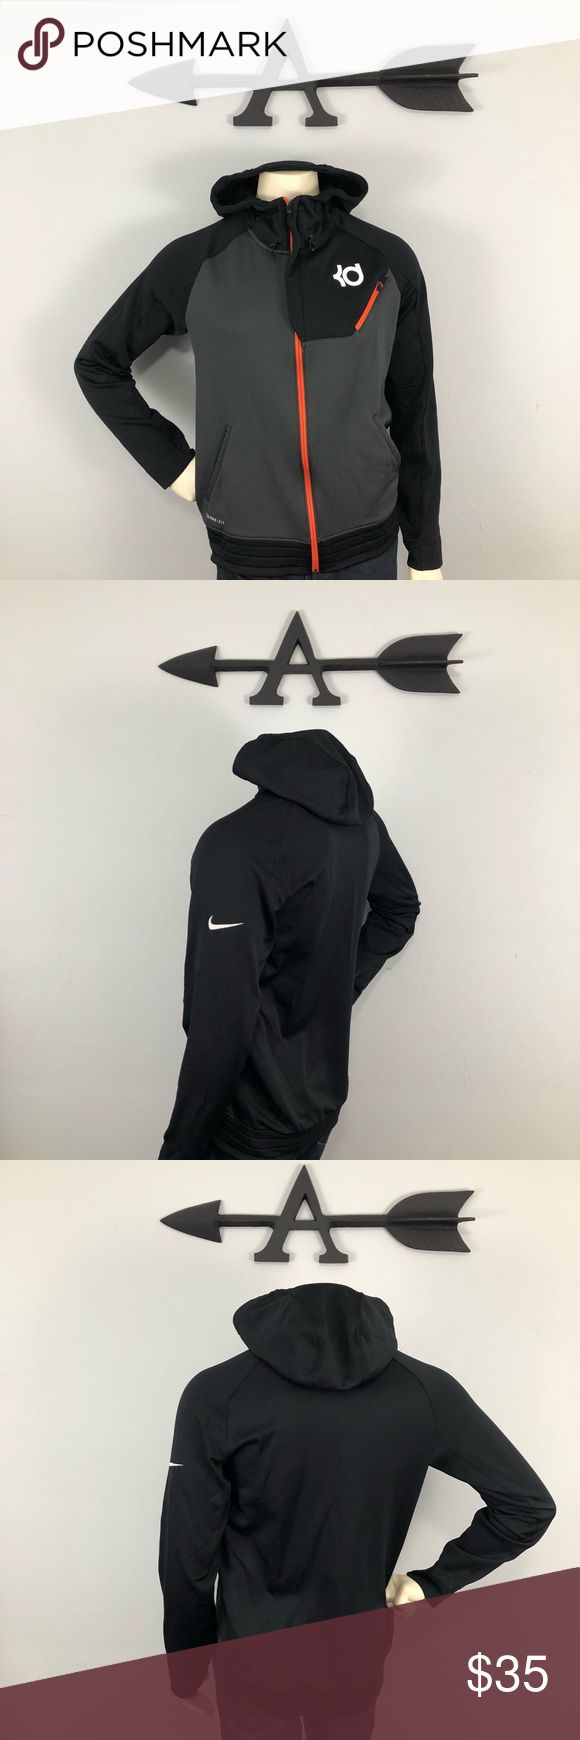 """Nike """"Kevin Durant"""" Hoodie size Medium This hoodie is in great condition. No snags or damage to the fabric and all zippers working properly. KD and Nike Logos are bright white and the cuffs are very clean and undamaged. .Chest 20.5"""", Height 26.5"""". See pictures to verify measurements. Please feel free to ask further questions and all offers will be considered.  ••Posh Ambassador•• ••Bundle 4 Maximum Savings•• Nike Shirts Sweatshirts & Hoodies"""